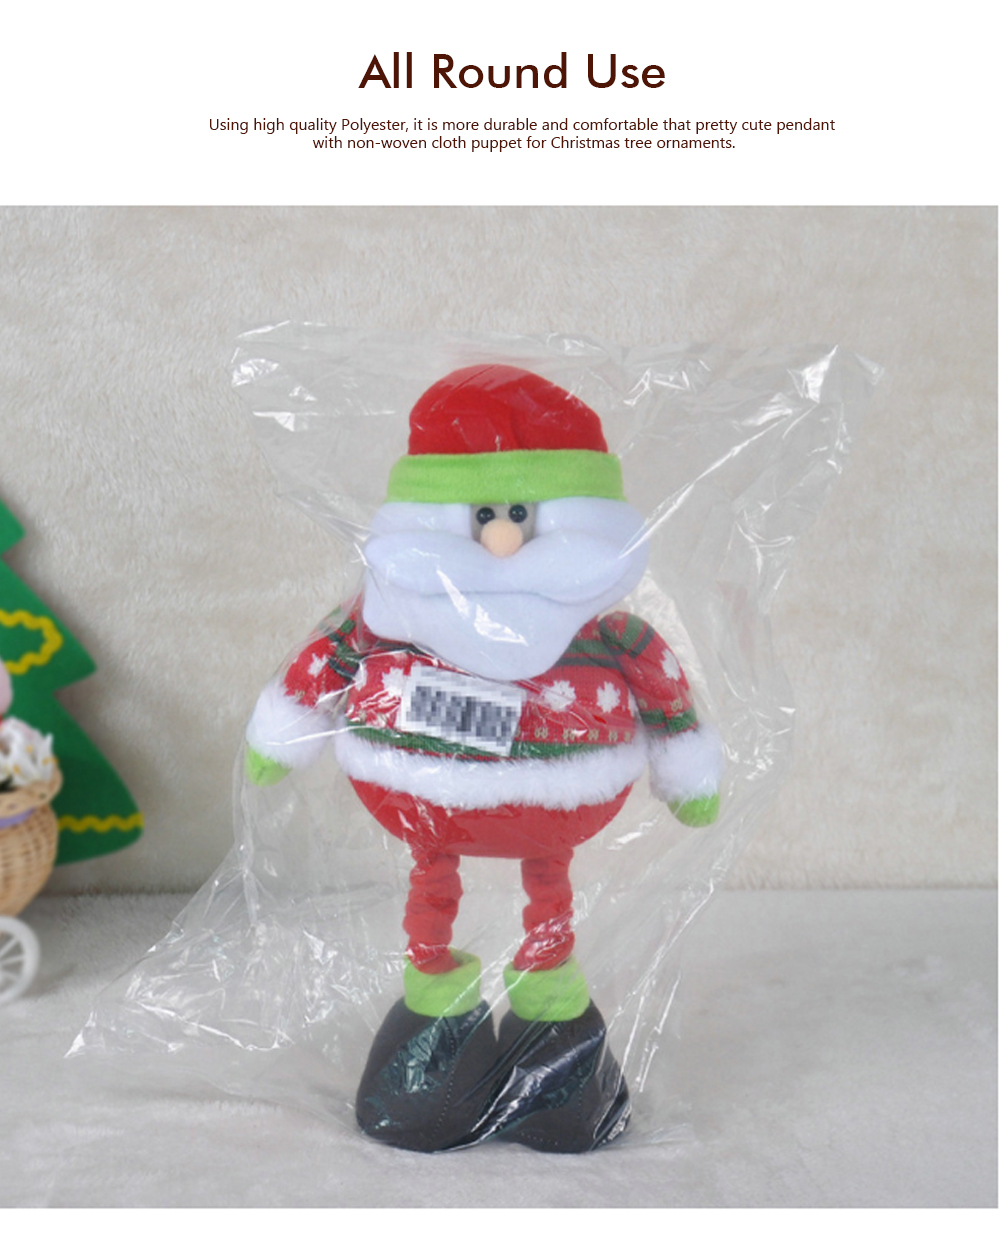 Standing Telescopic Santa Snowman, Figurine Santa Claus Posing Christmas Doll for Gifts 6